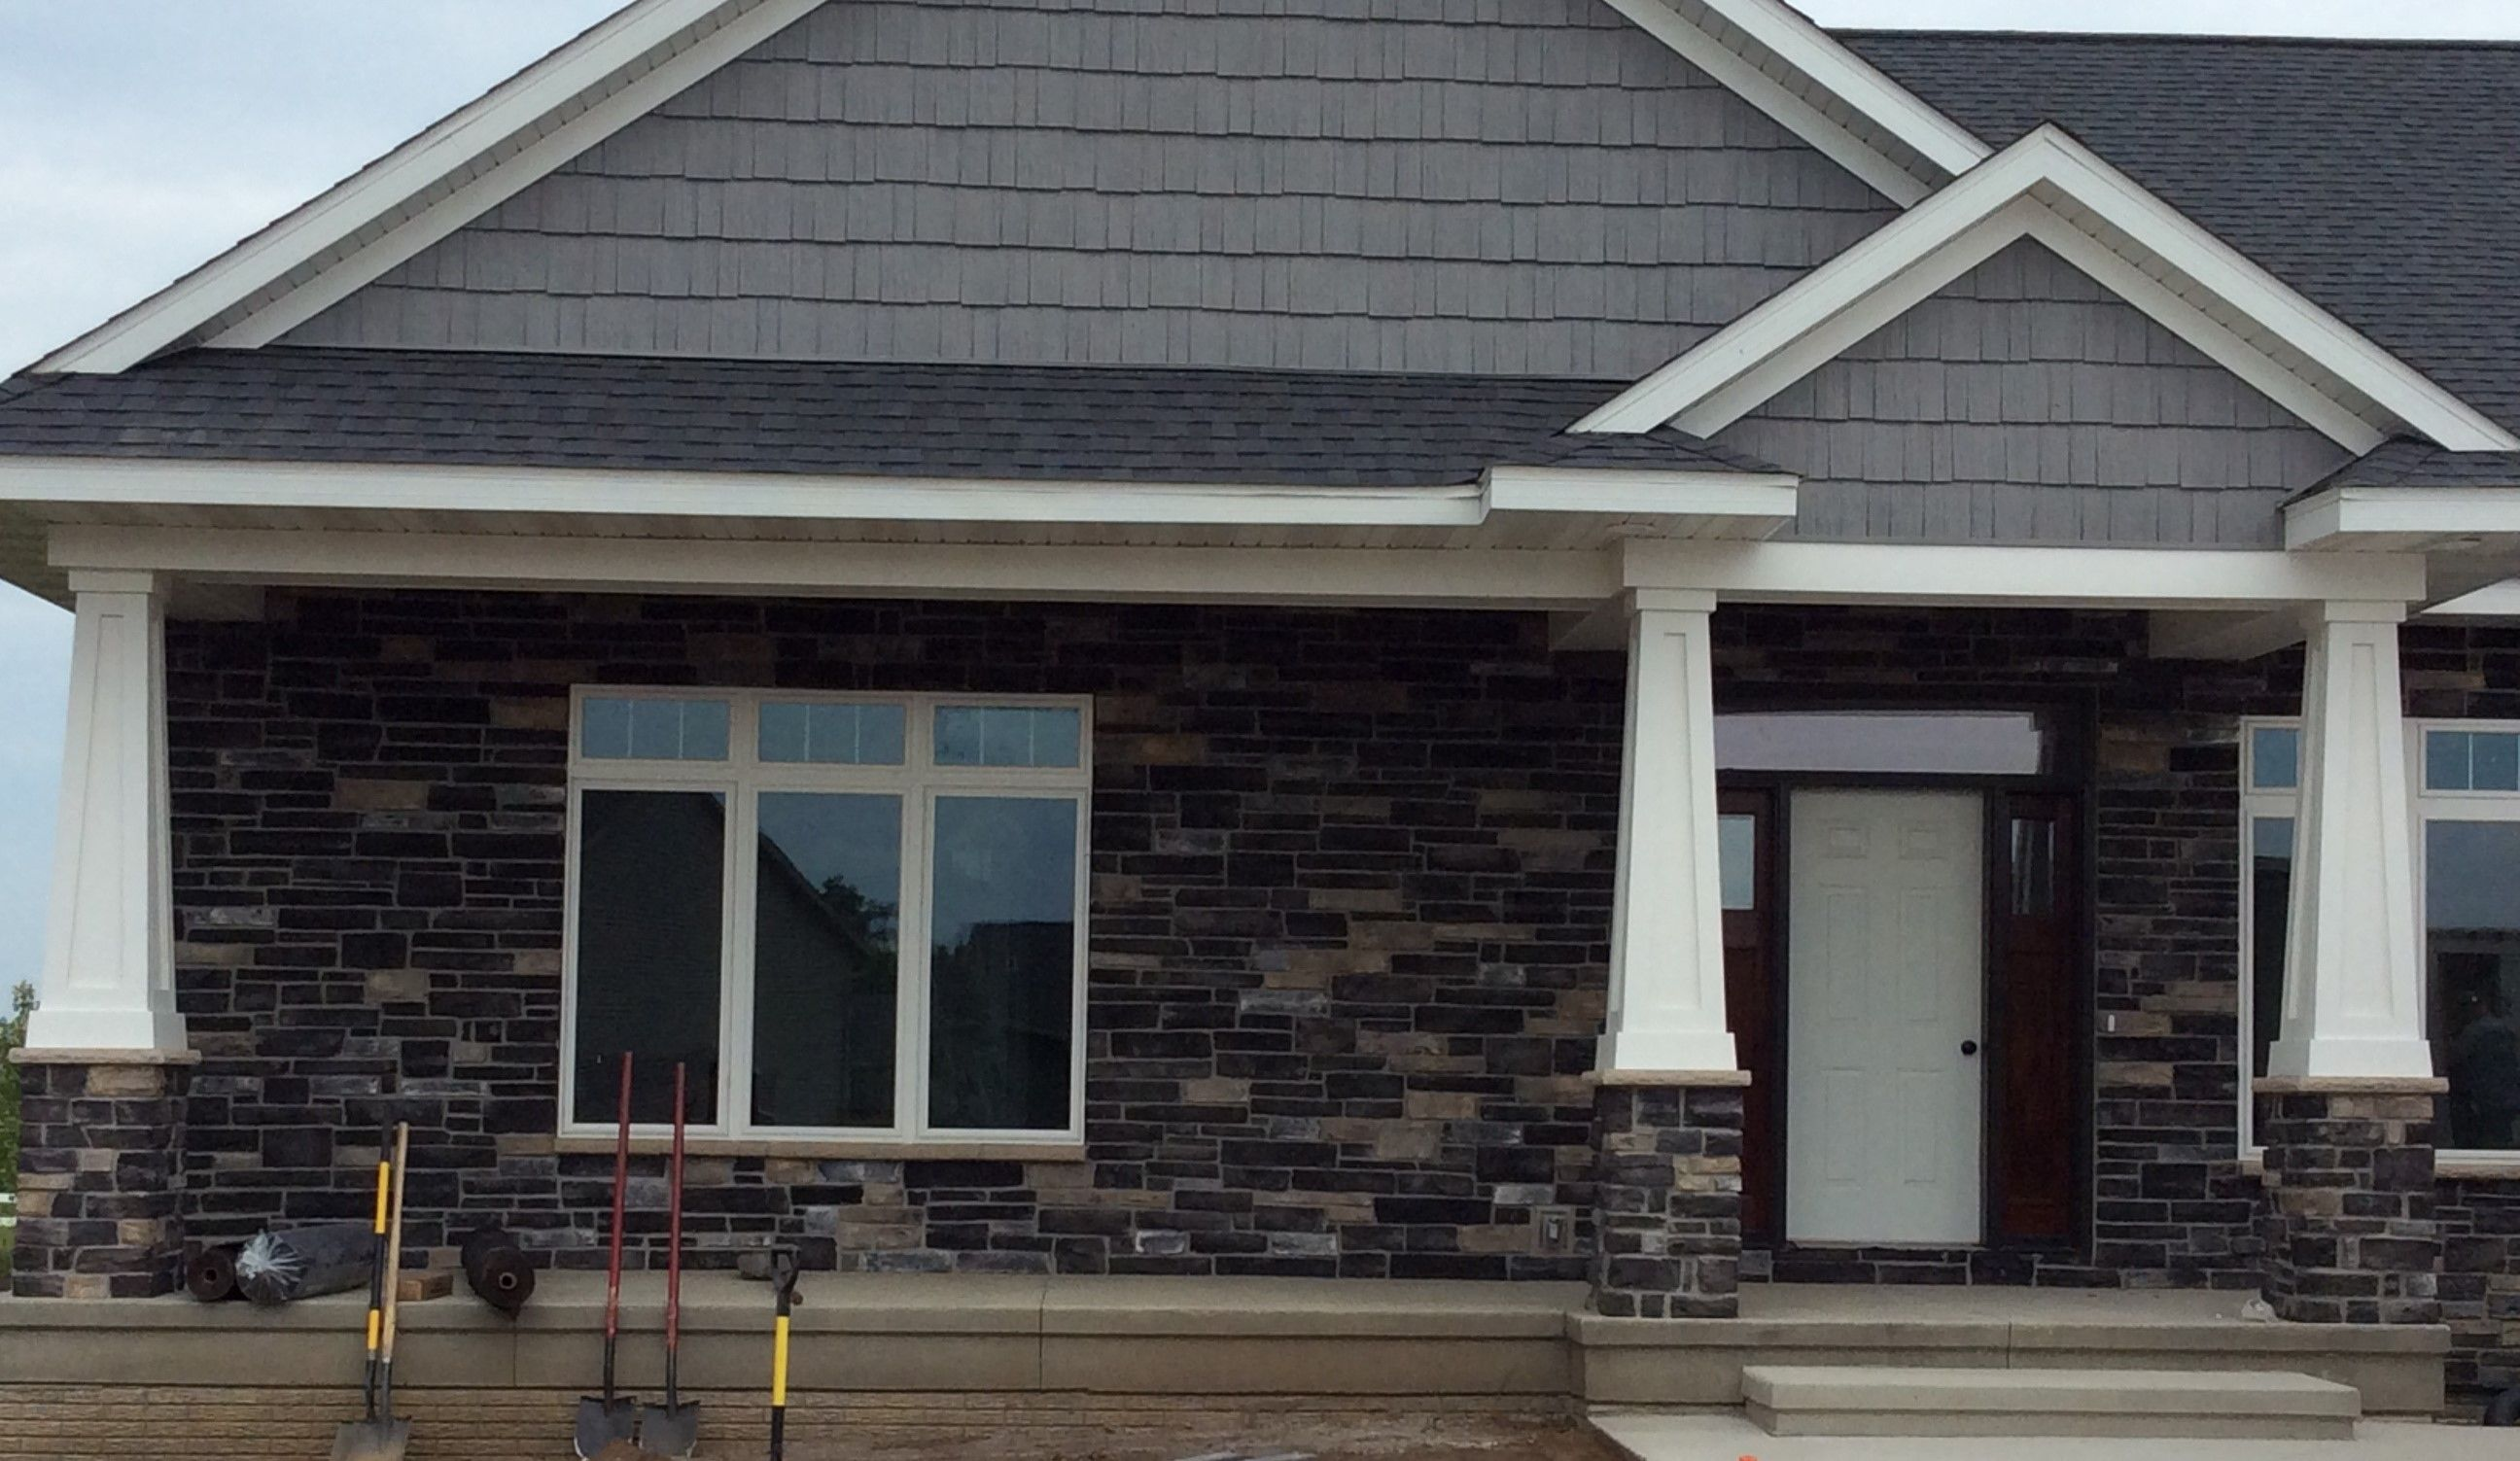 Boral black rundle country ledgestone country ledgestone for Exterior ledgestone